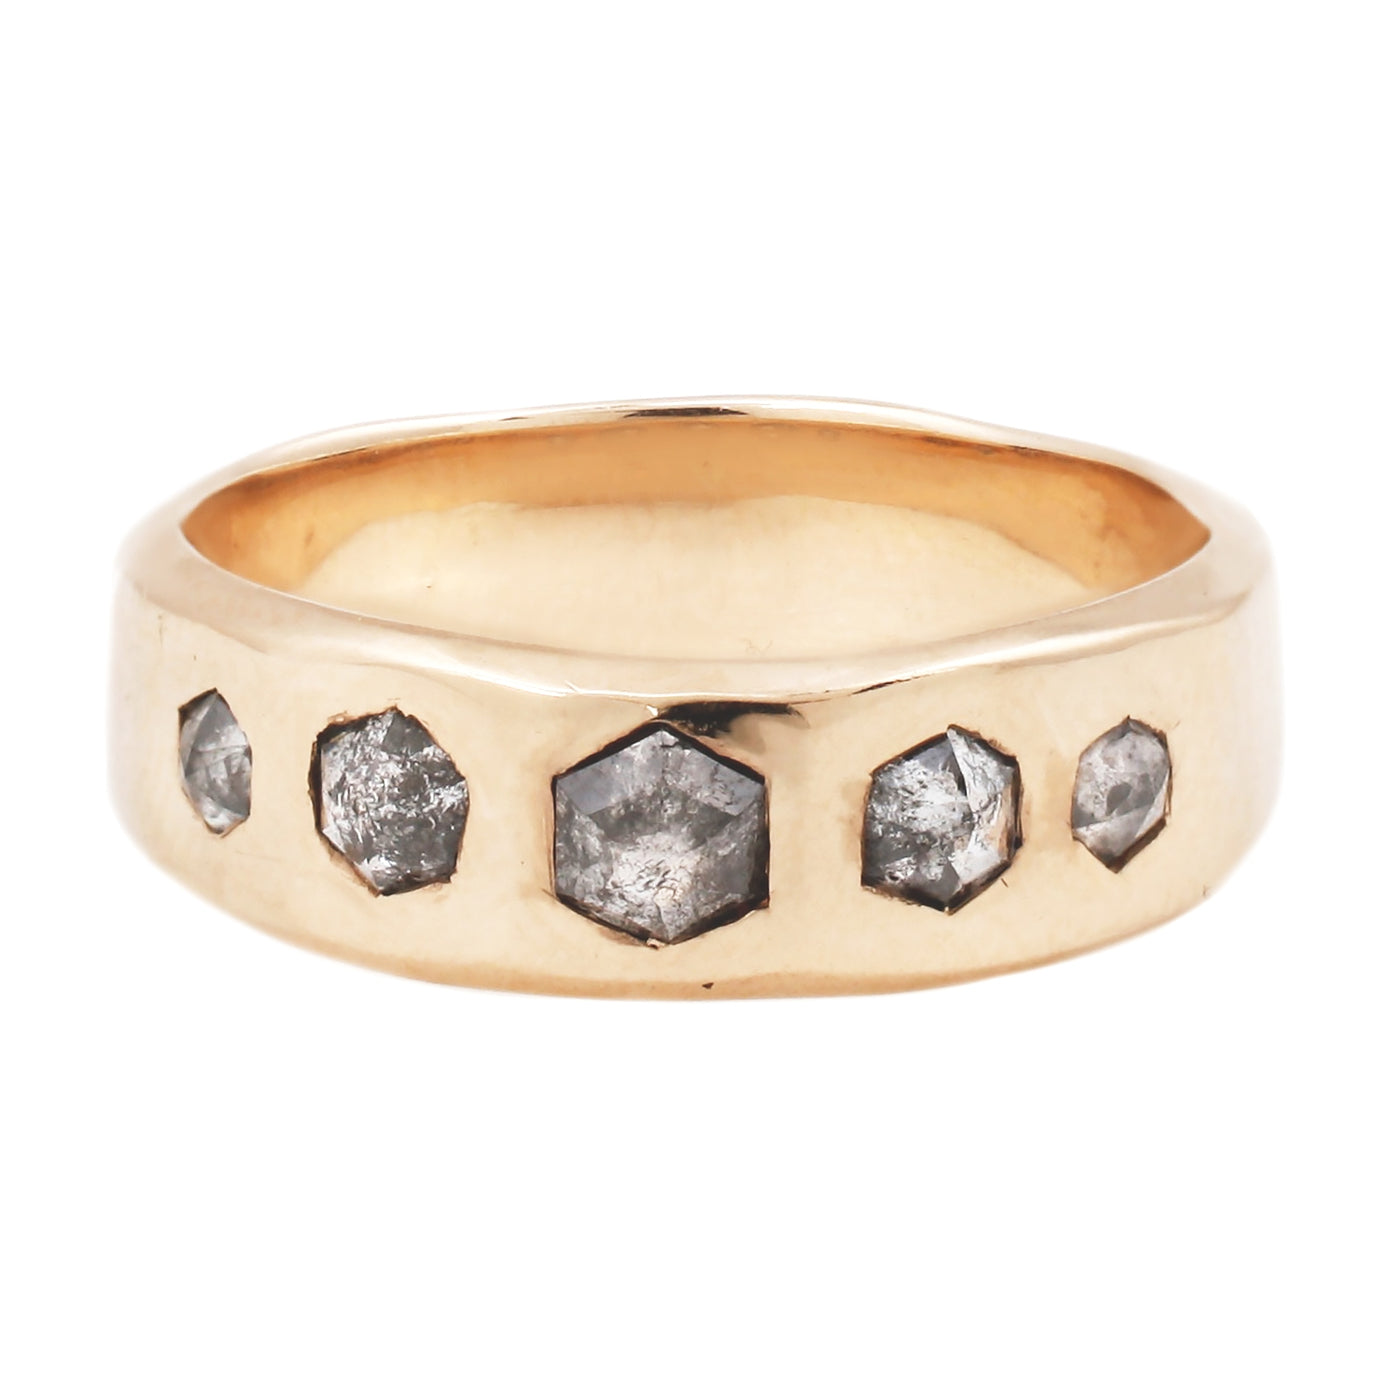 Adeline Gold Quintet Ring with Diamonds